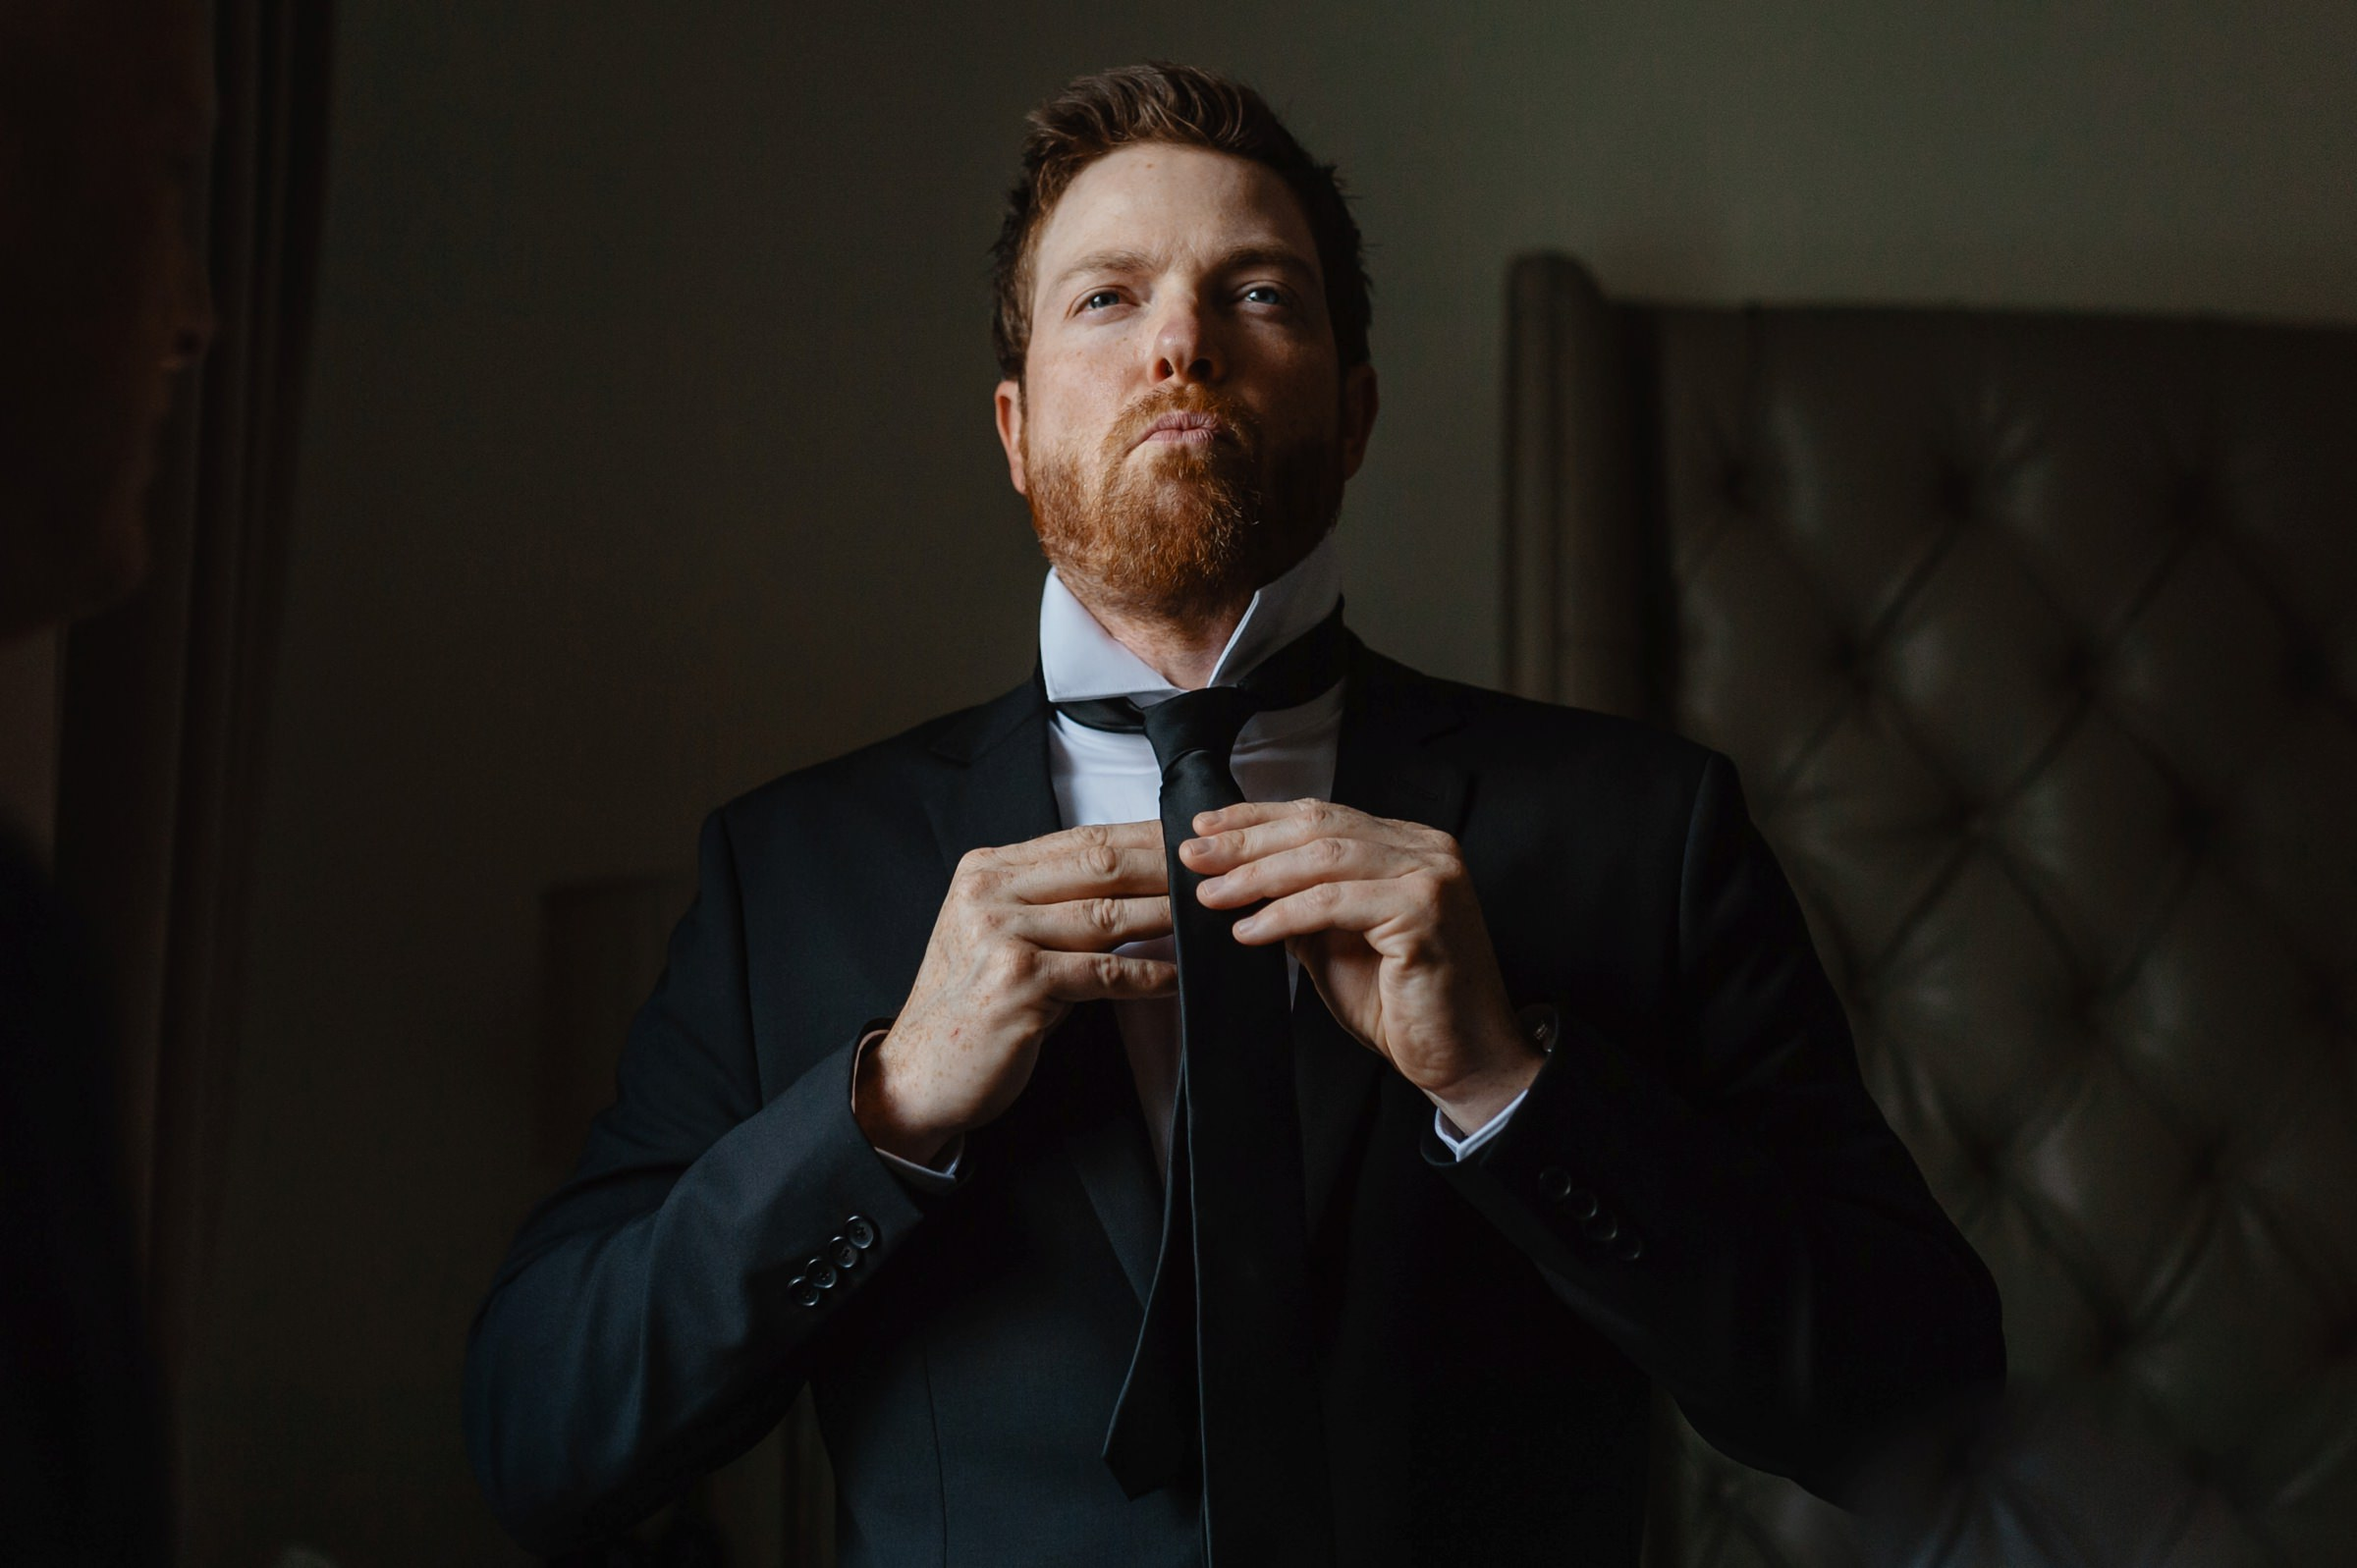 groom putting tie on-new orleans-austin-houston-wedding- photo by Dark Roux